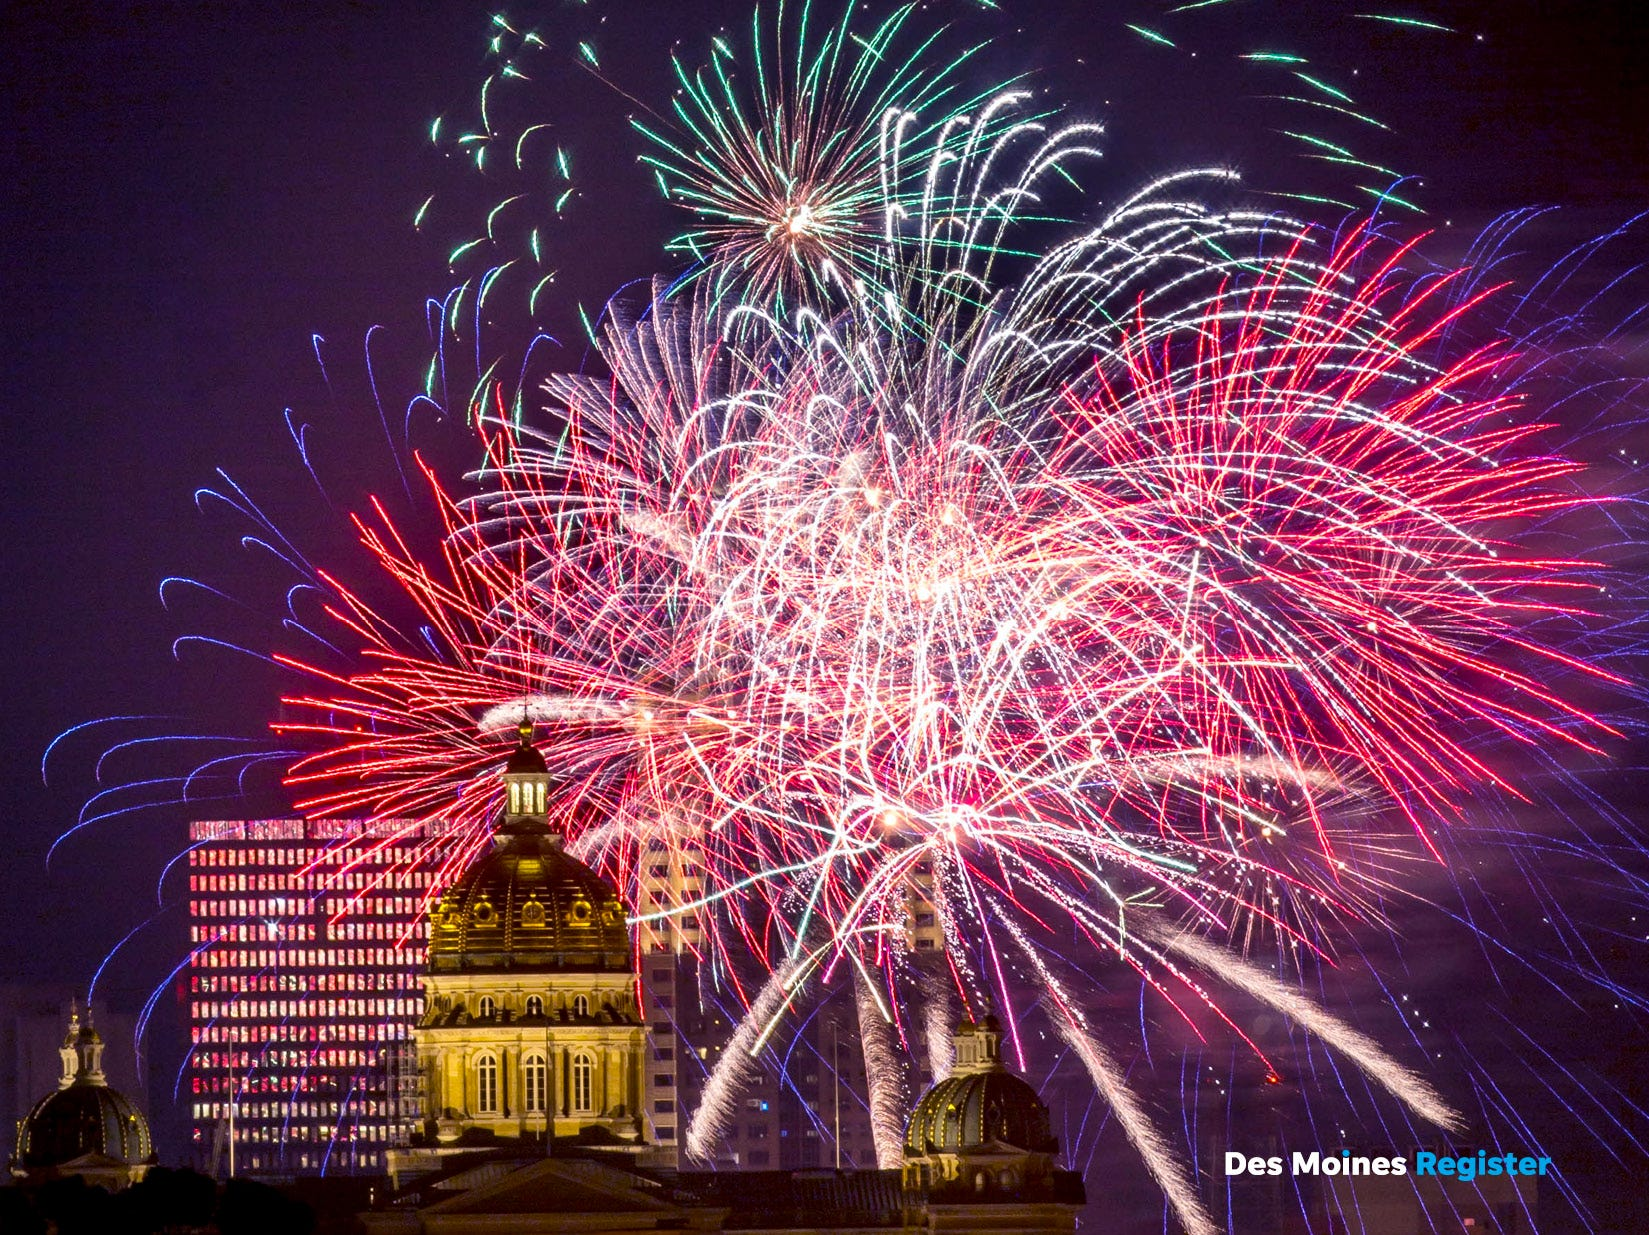 "<b>July: </b>Fireworks light up the sky between the Iowa Capitol and downtown Des Moines. The Register's 2019 photo calendar is available for $18 at <a href=""https://shopdmregister.com/collections/photo-gifts/products/2019-des-moines-register-photo-calendar?utm_source=desmoinesregister&utm_medium=link&utm_campaign=launch_gallery"" target=""_blank"">ShopDMRegister.com. </a>"